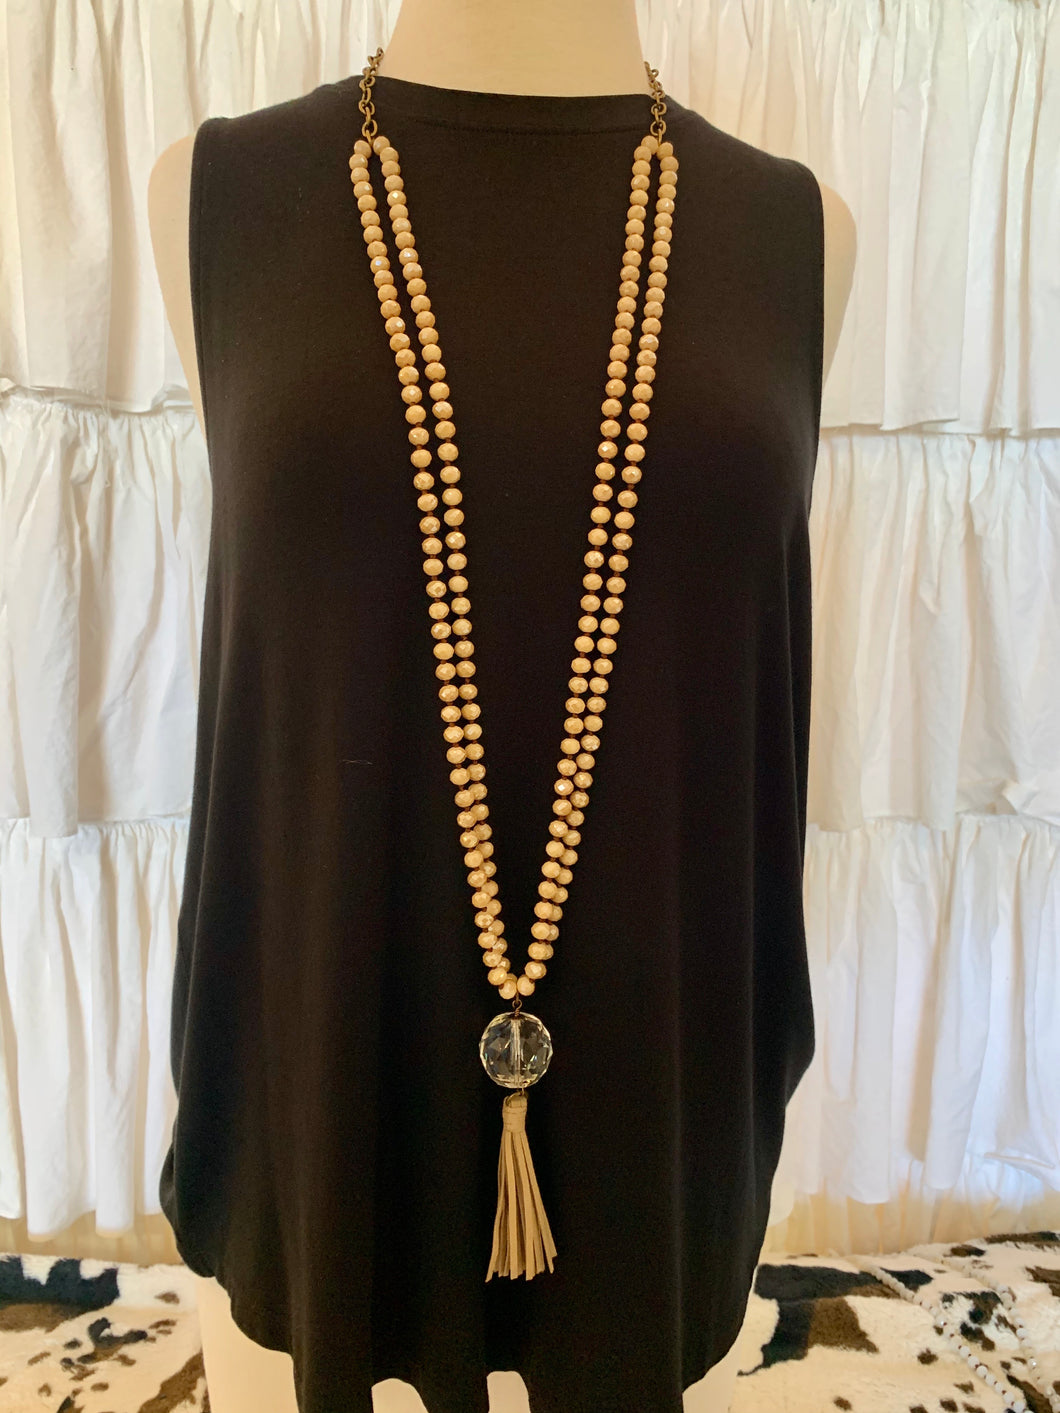 Pink Panache Taupe Doubled Beaded Necklace w/ Crystal Pendant & Taupe Tassel